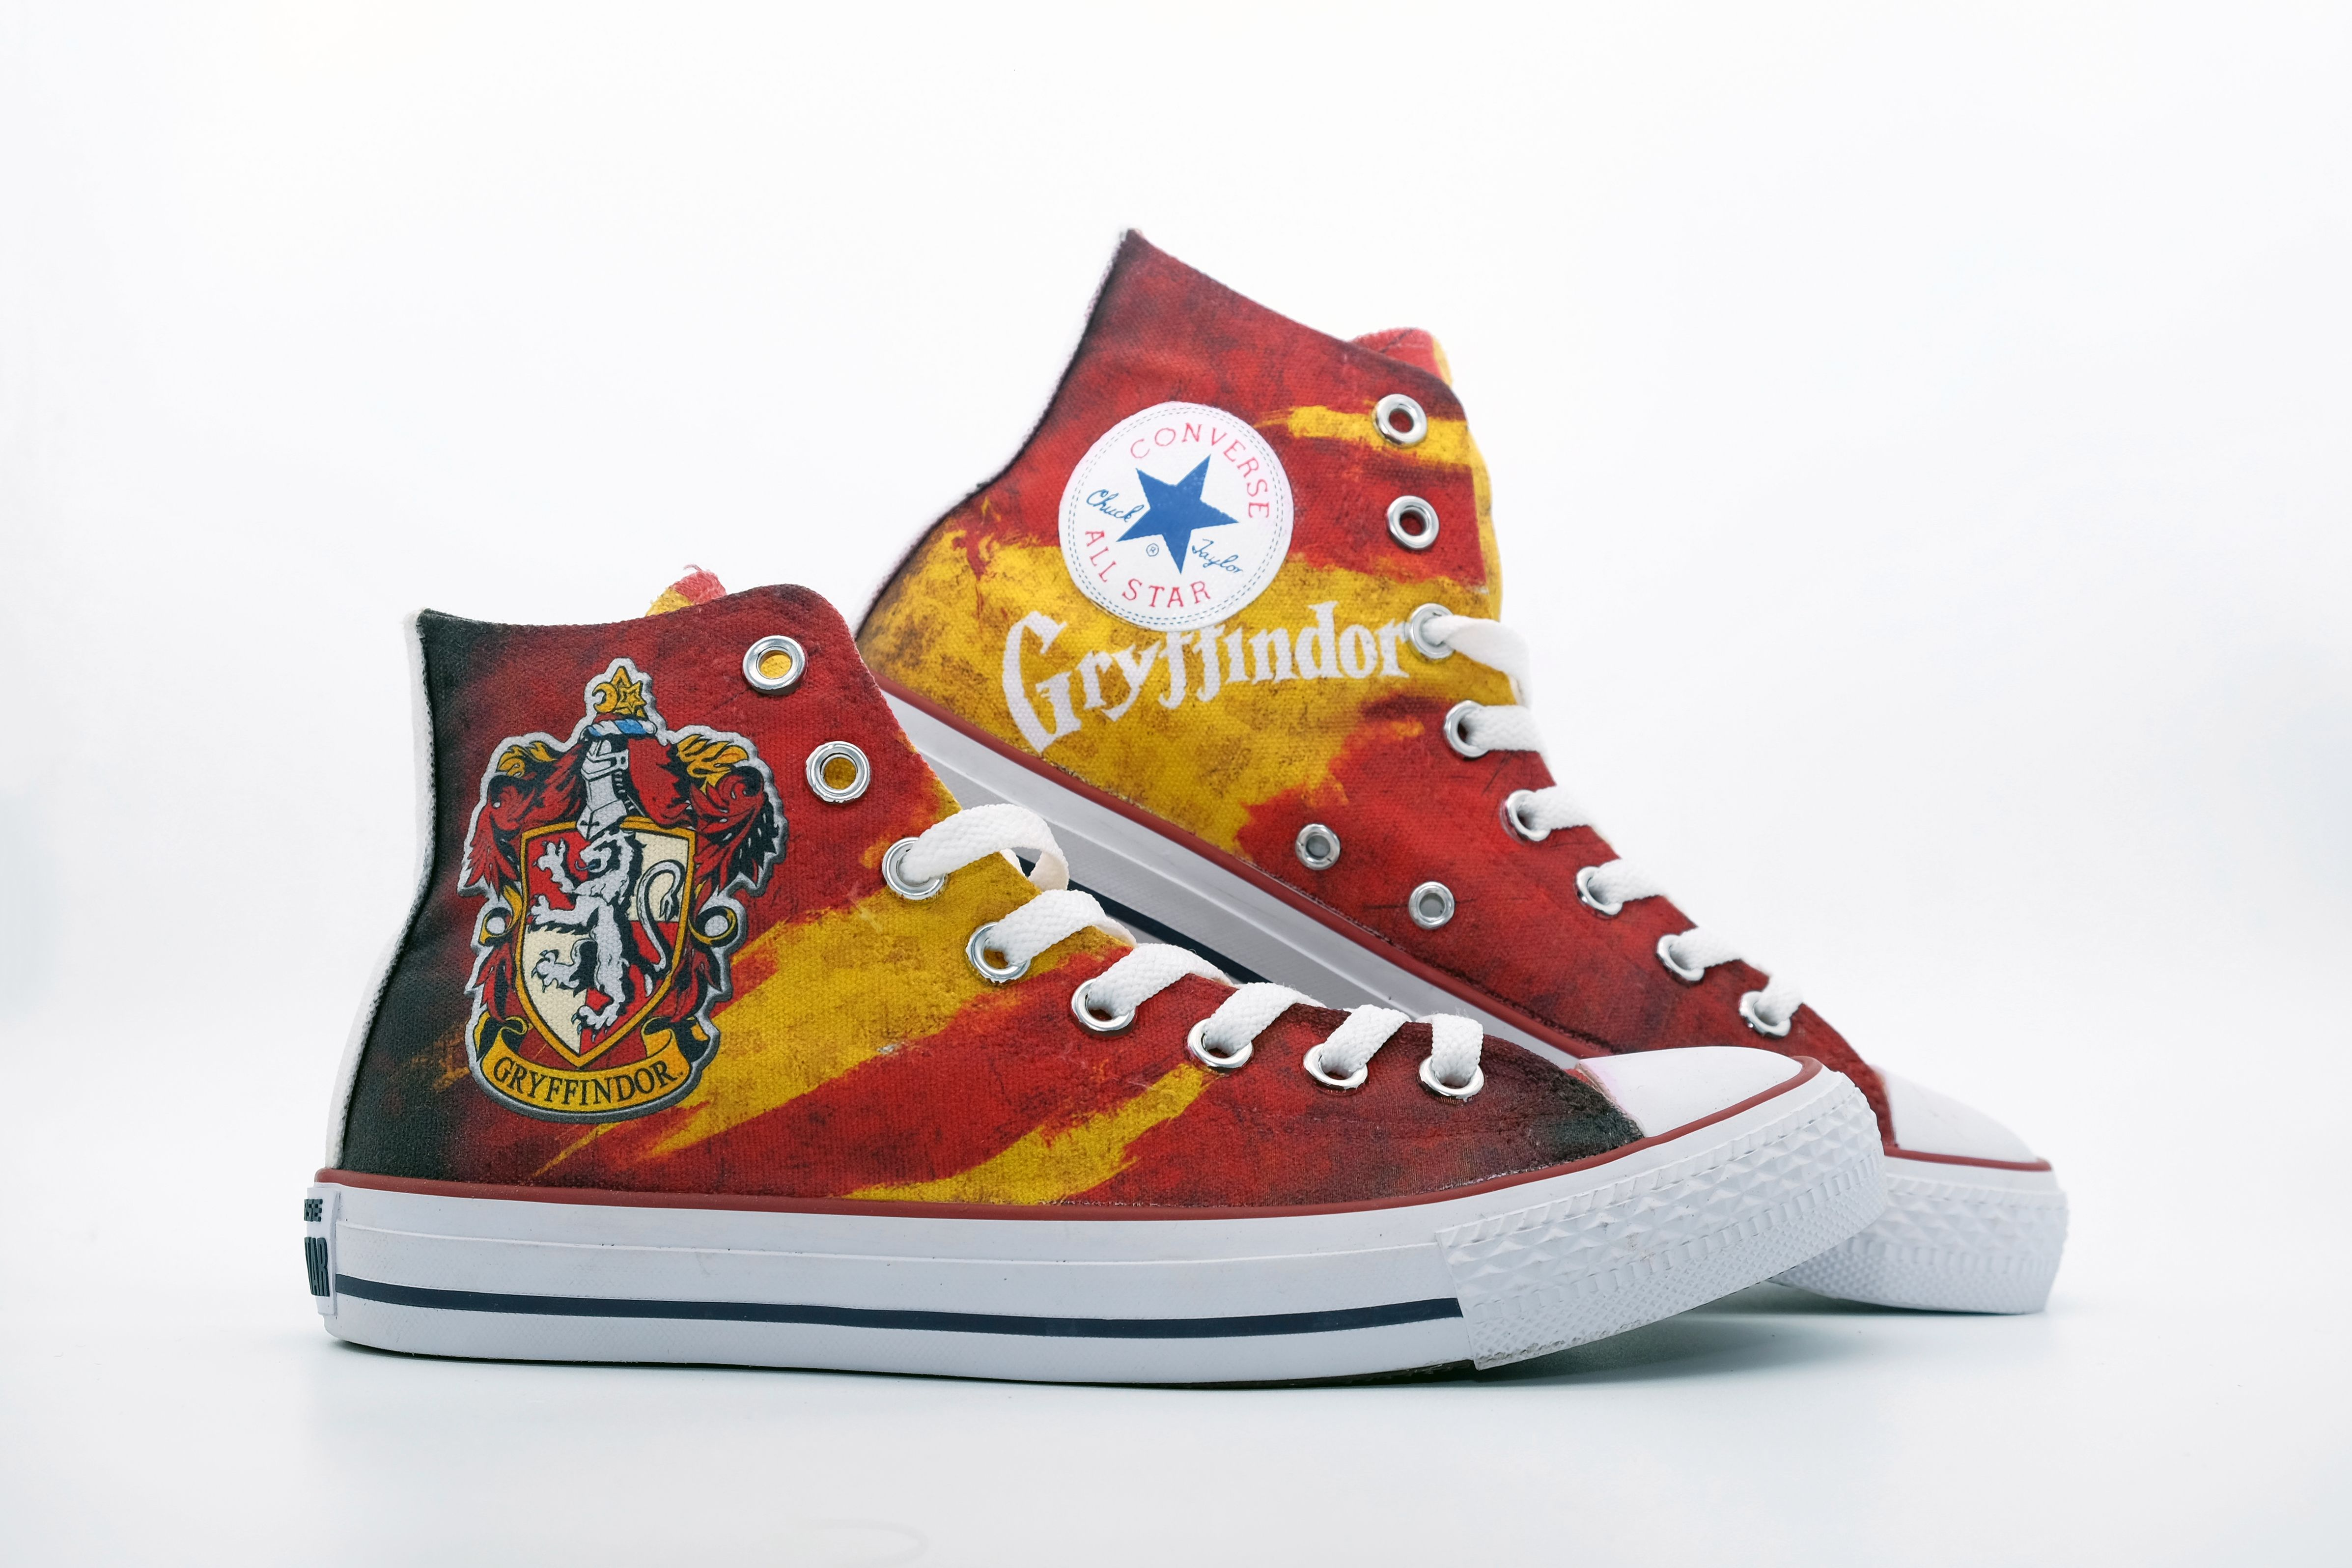 03347c9a434809 Harry Potter Gryffindor Custom Shoes - Harry Potter Shoes - Harry Potter  Converse - Gryffindor Converse